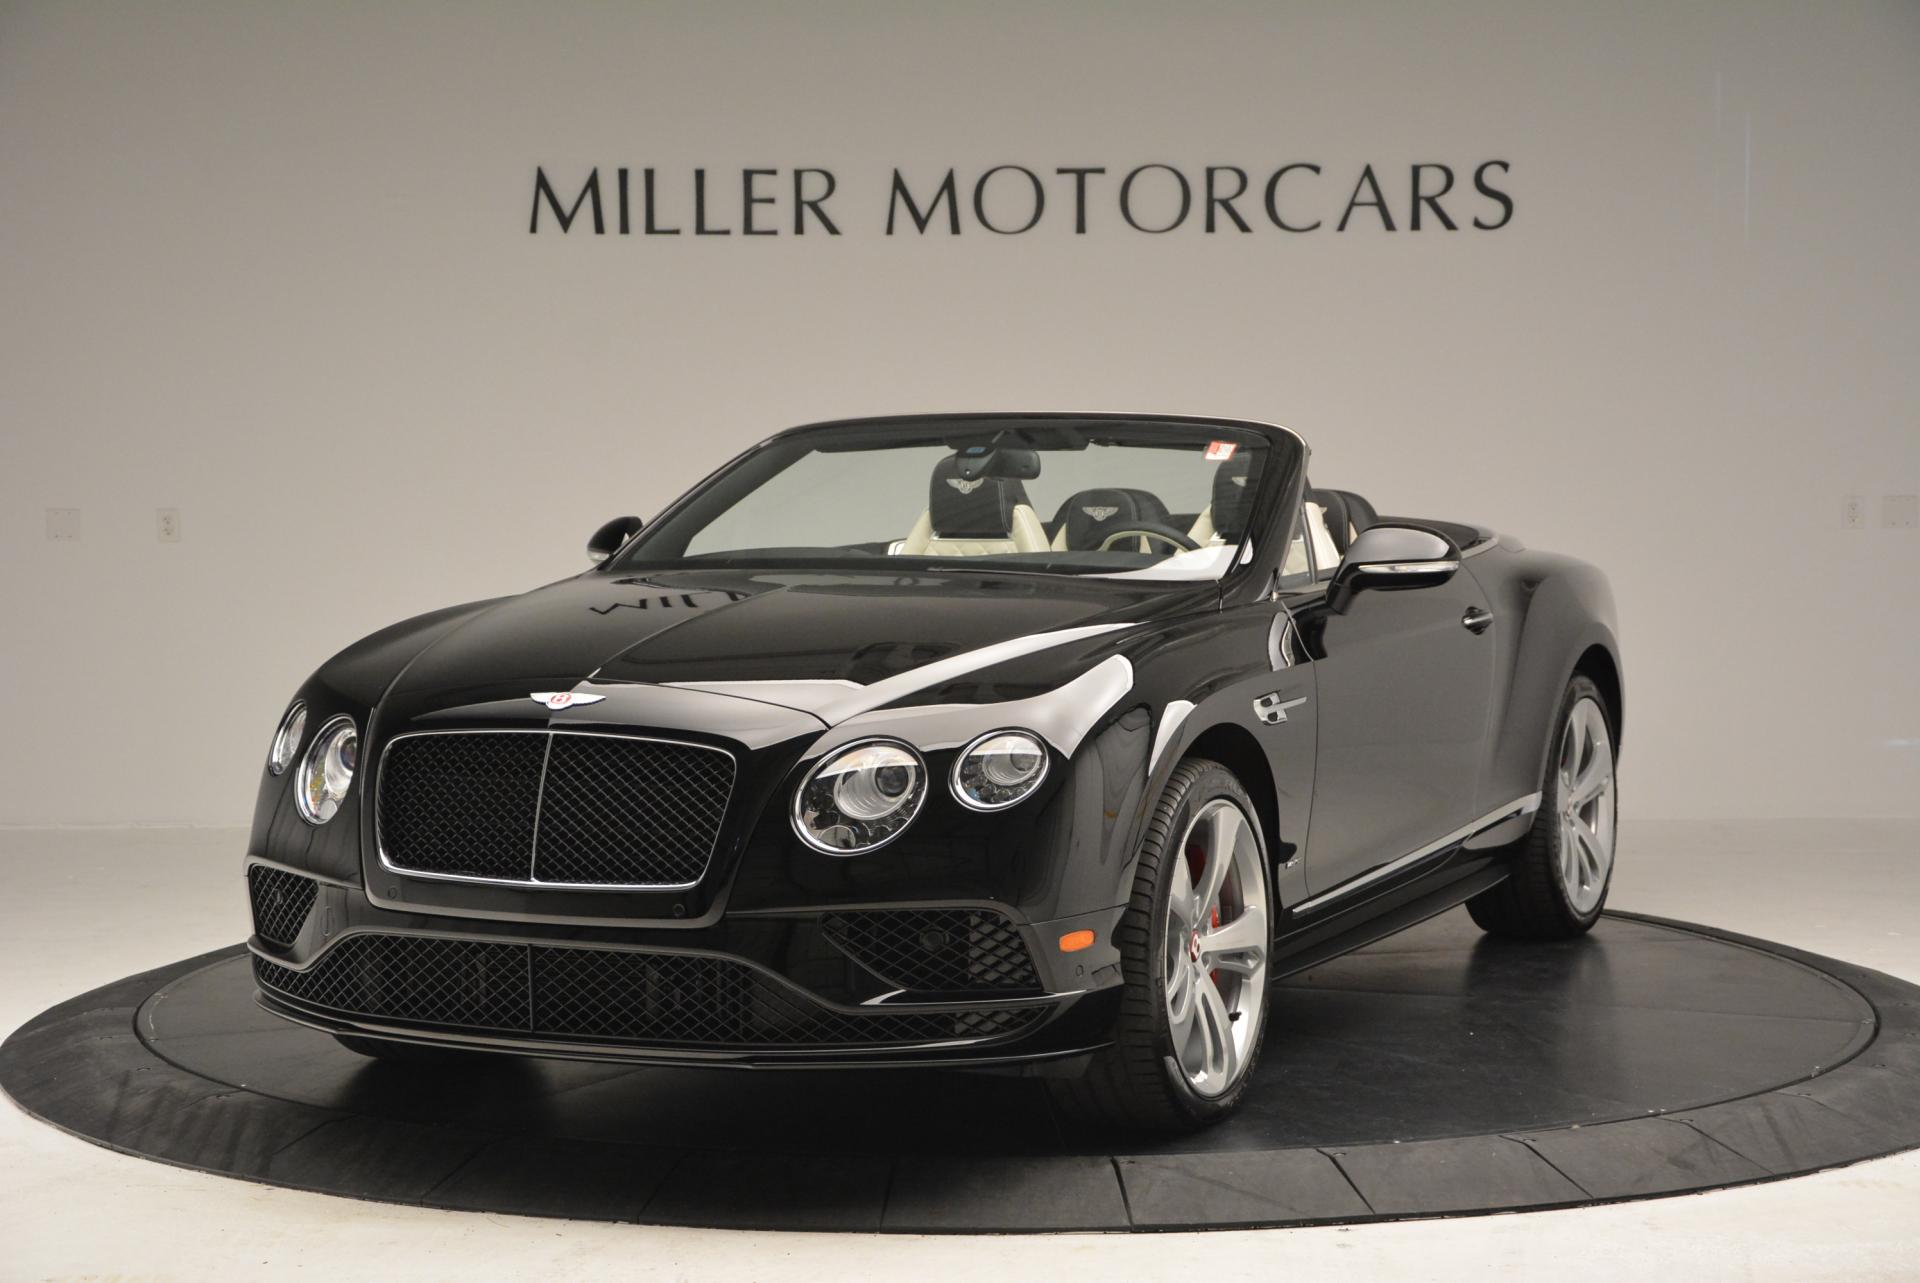 New 2016 Bentley Continental GT V8 S Convertible  For Sale In Greenwich, CT 13_main